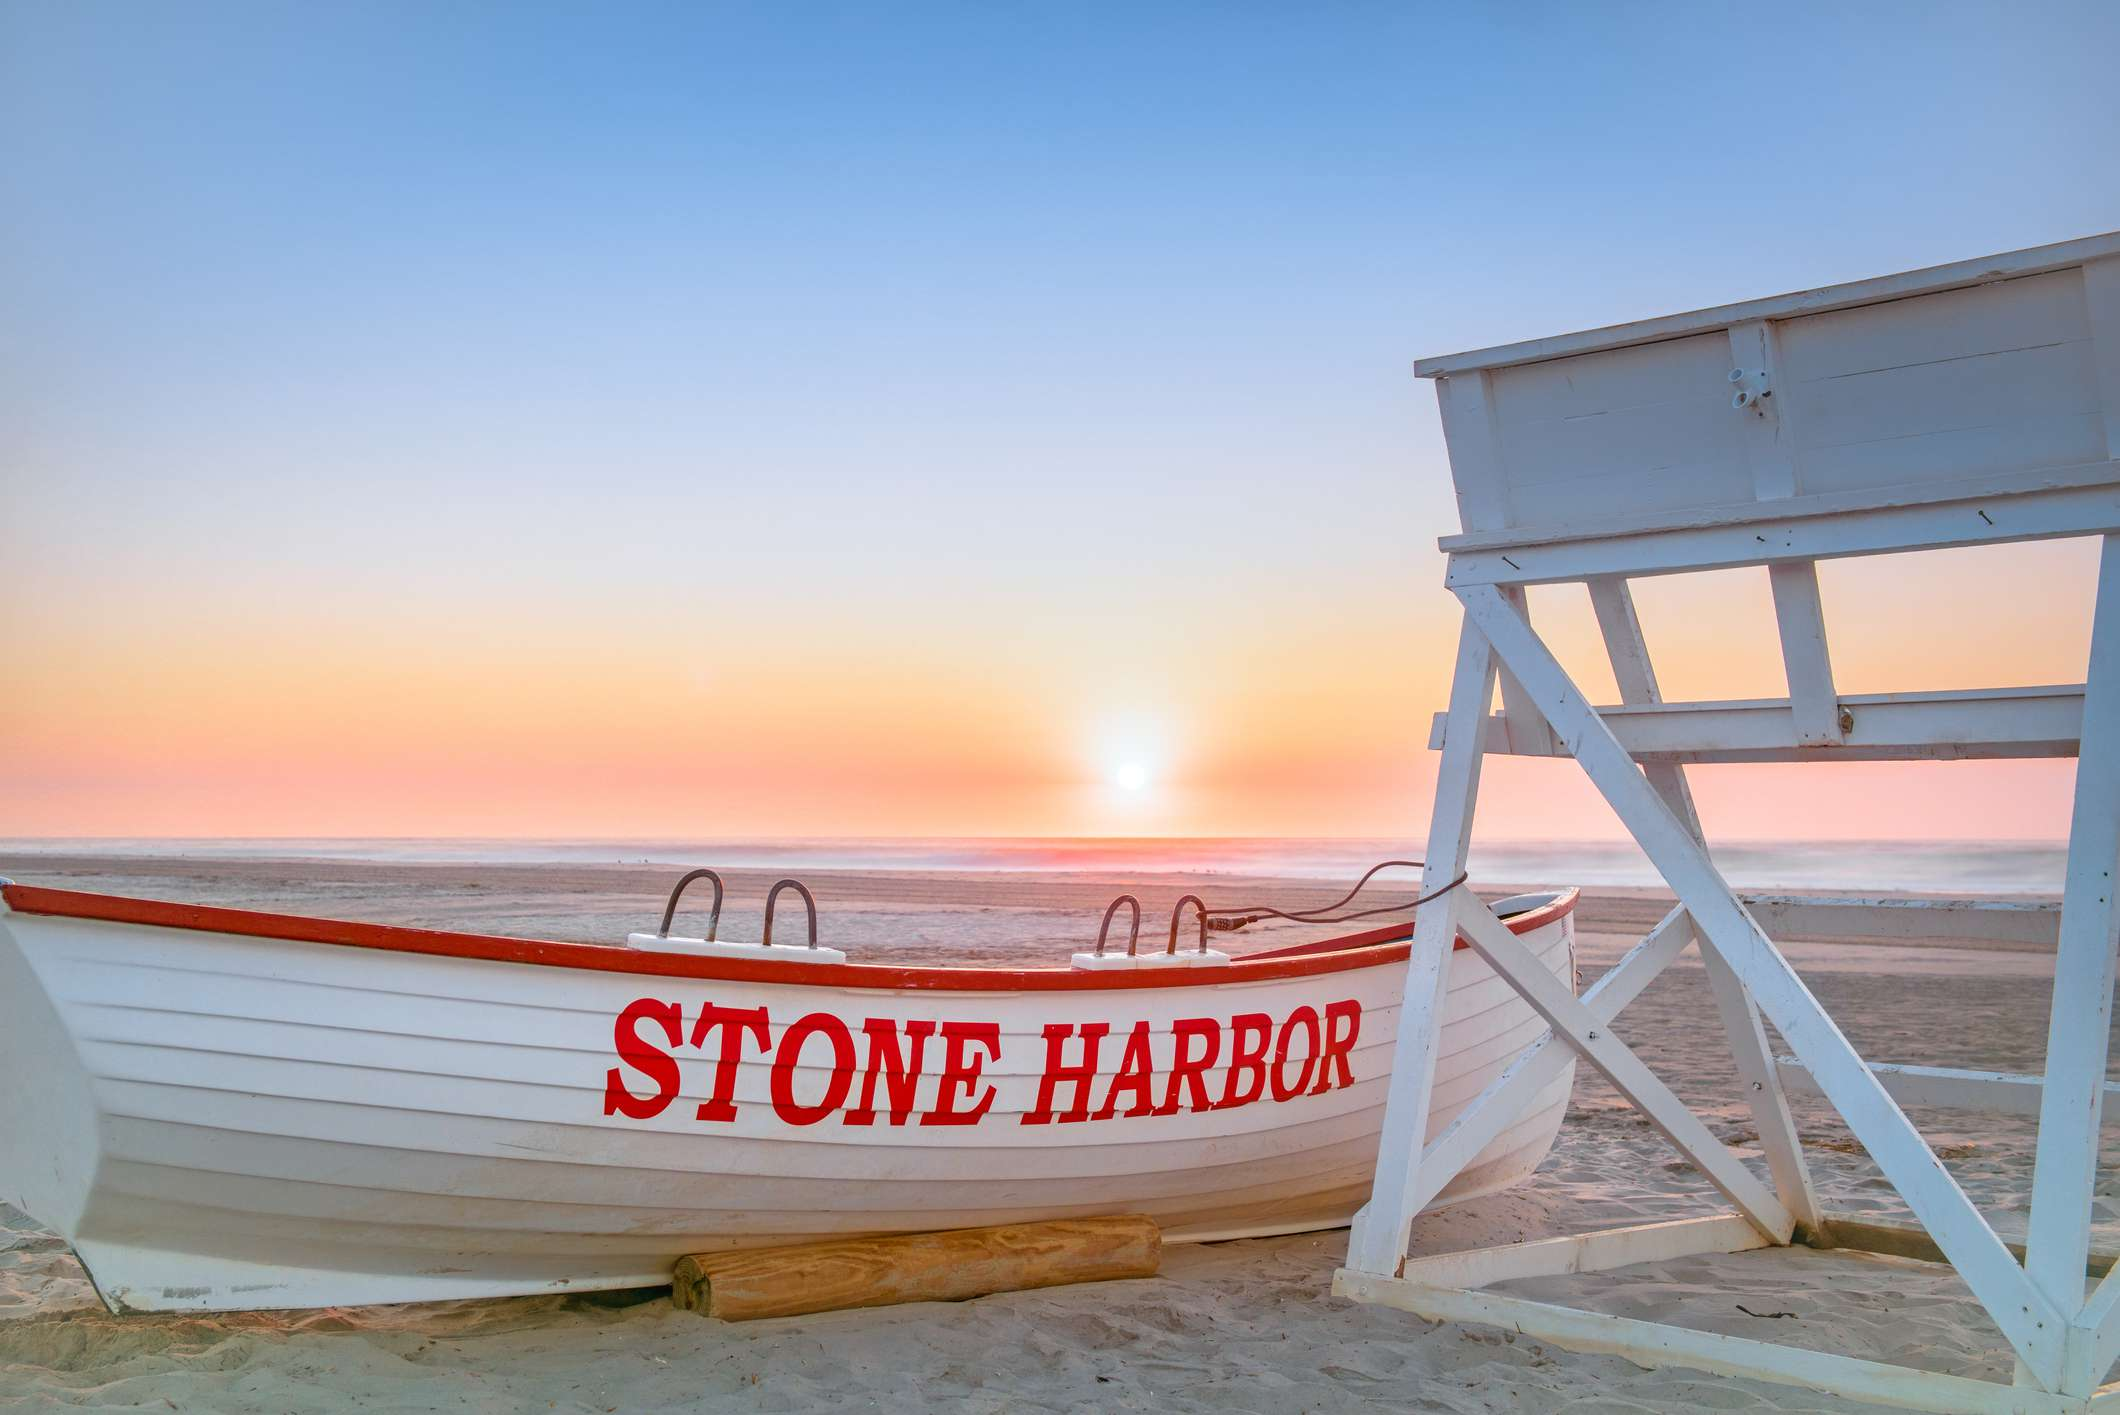 Stone Harbor Lifeguard boat and stand